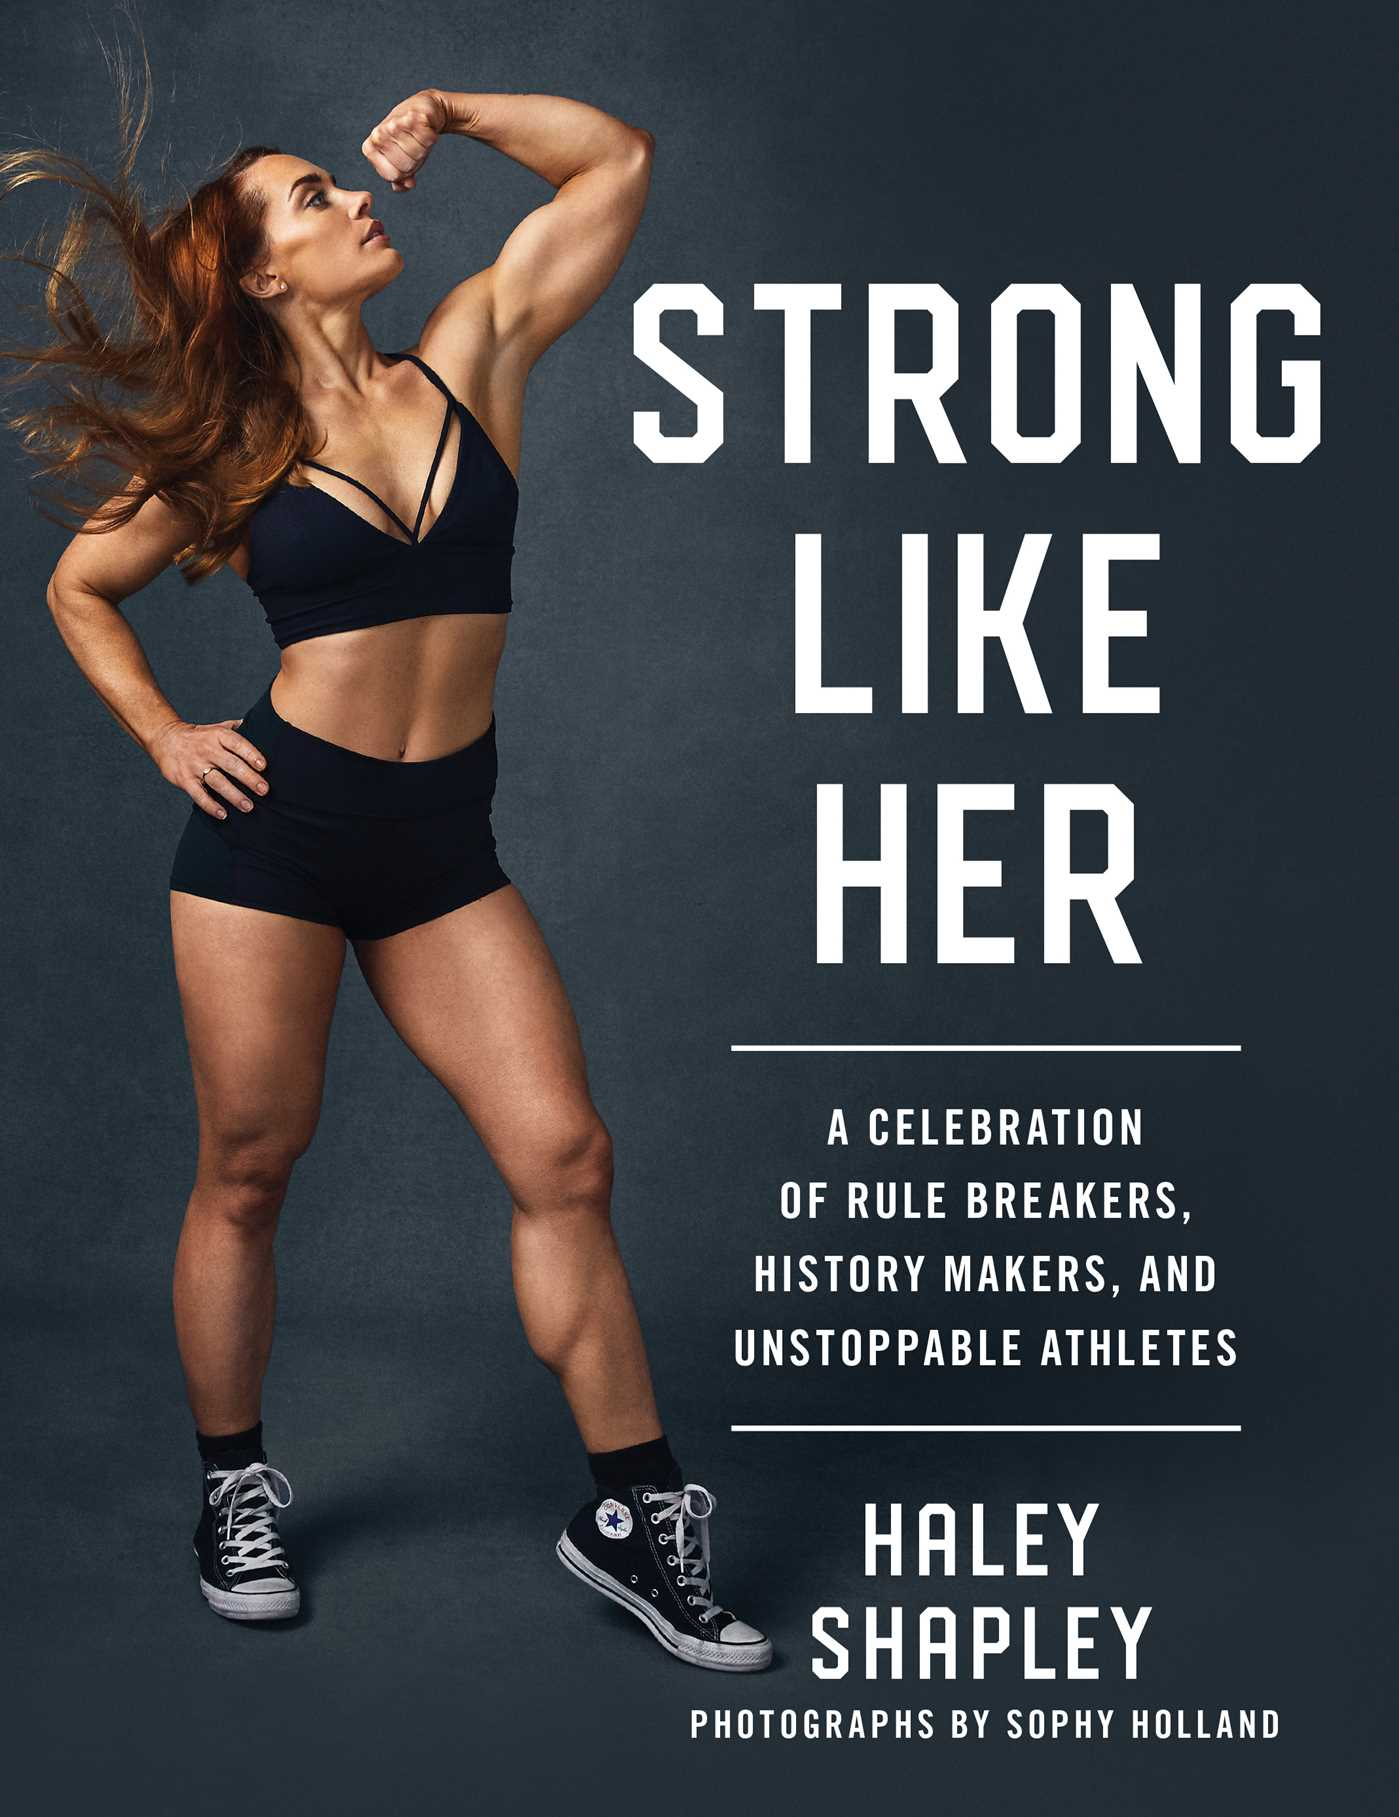 Book Launch: Strong Like Her by Haley Shapley in conversation with Jaimie Monahan, Holly Rilinger and more!  (CANCELED)